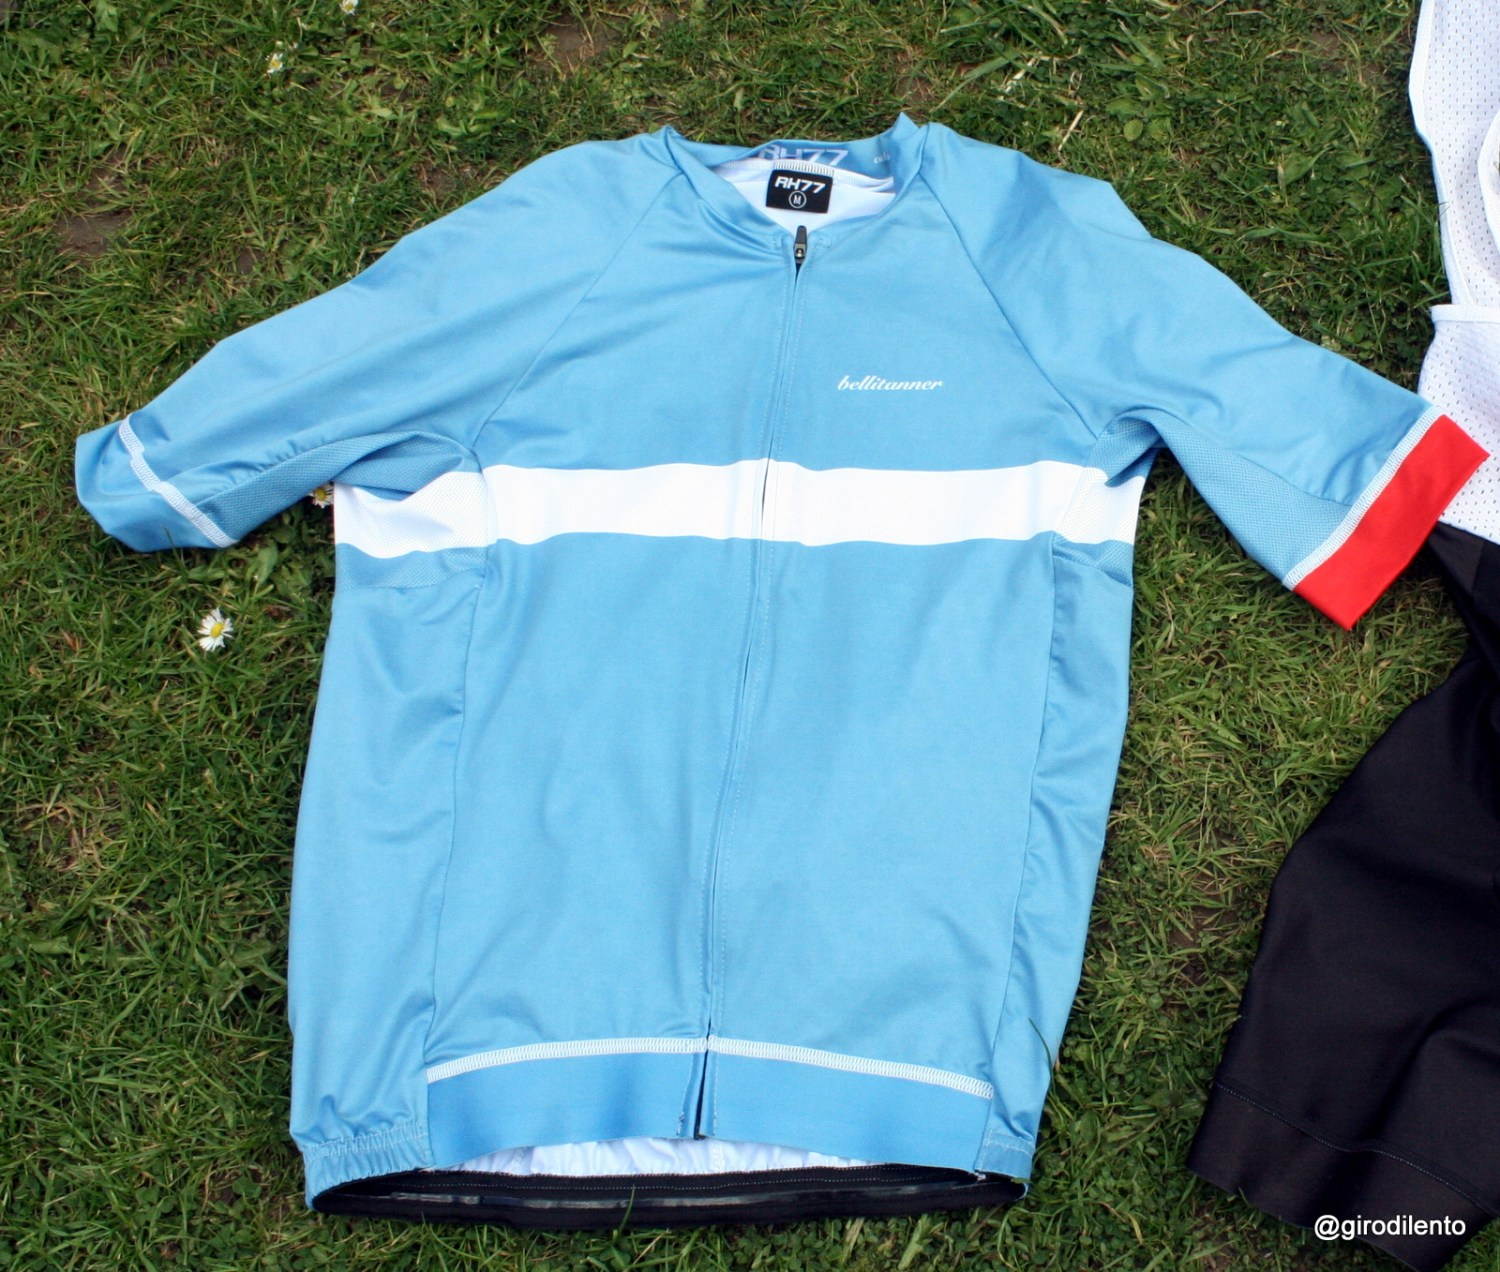 Stylish Bellitanner summer jersey from the front